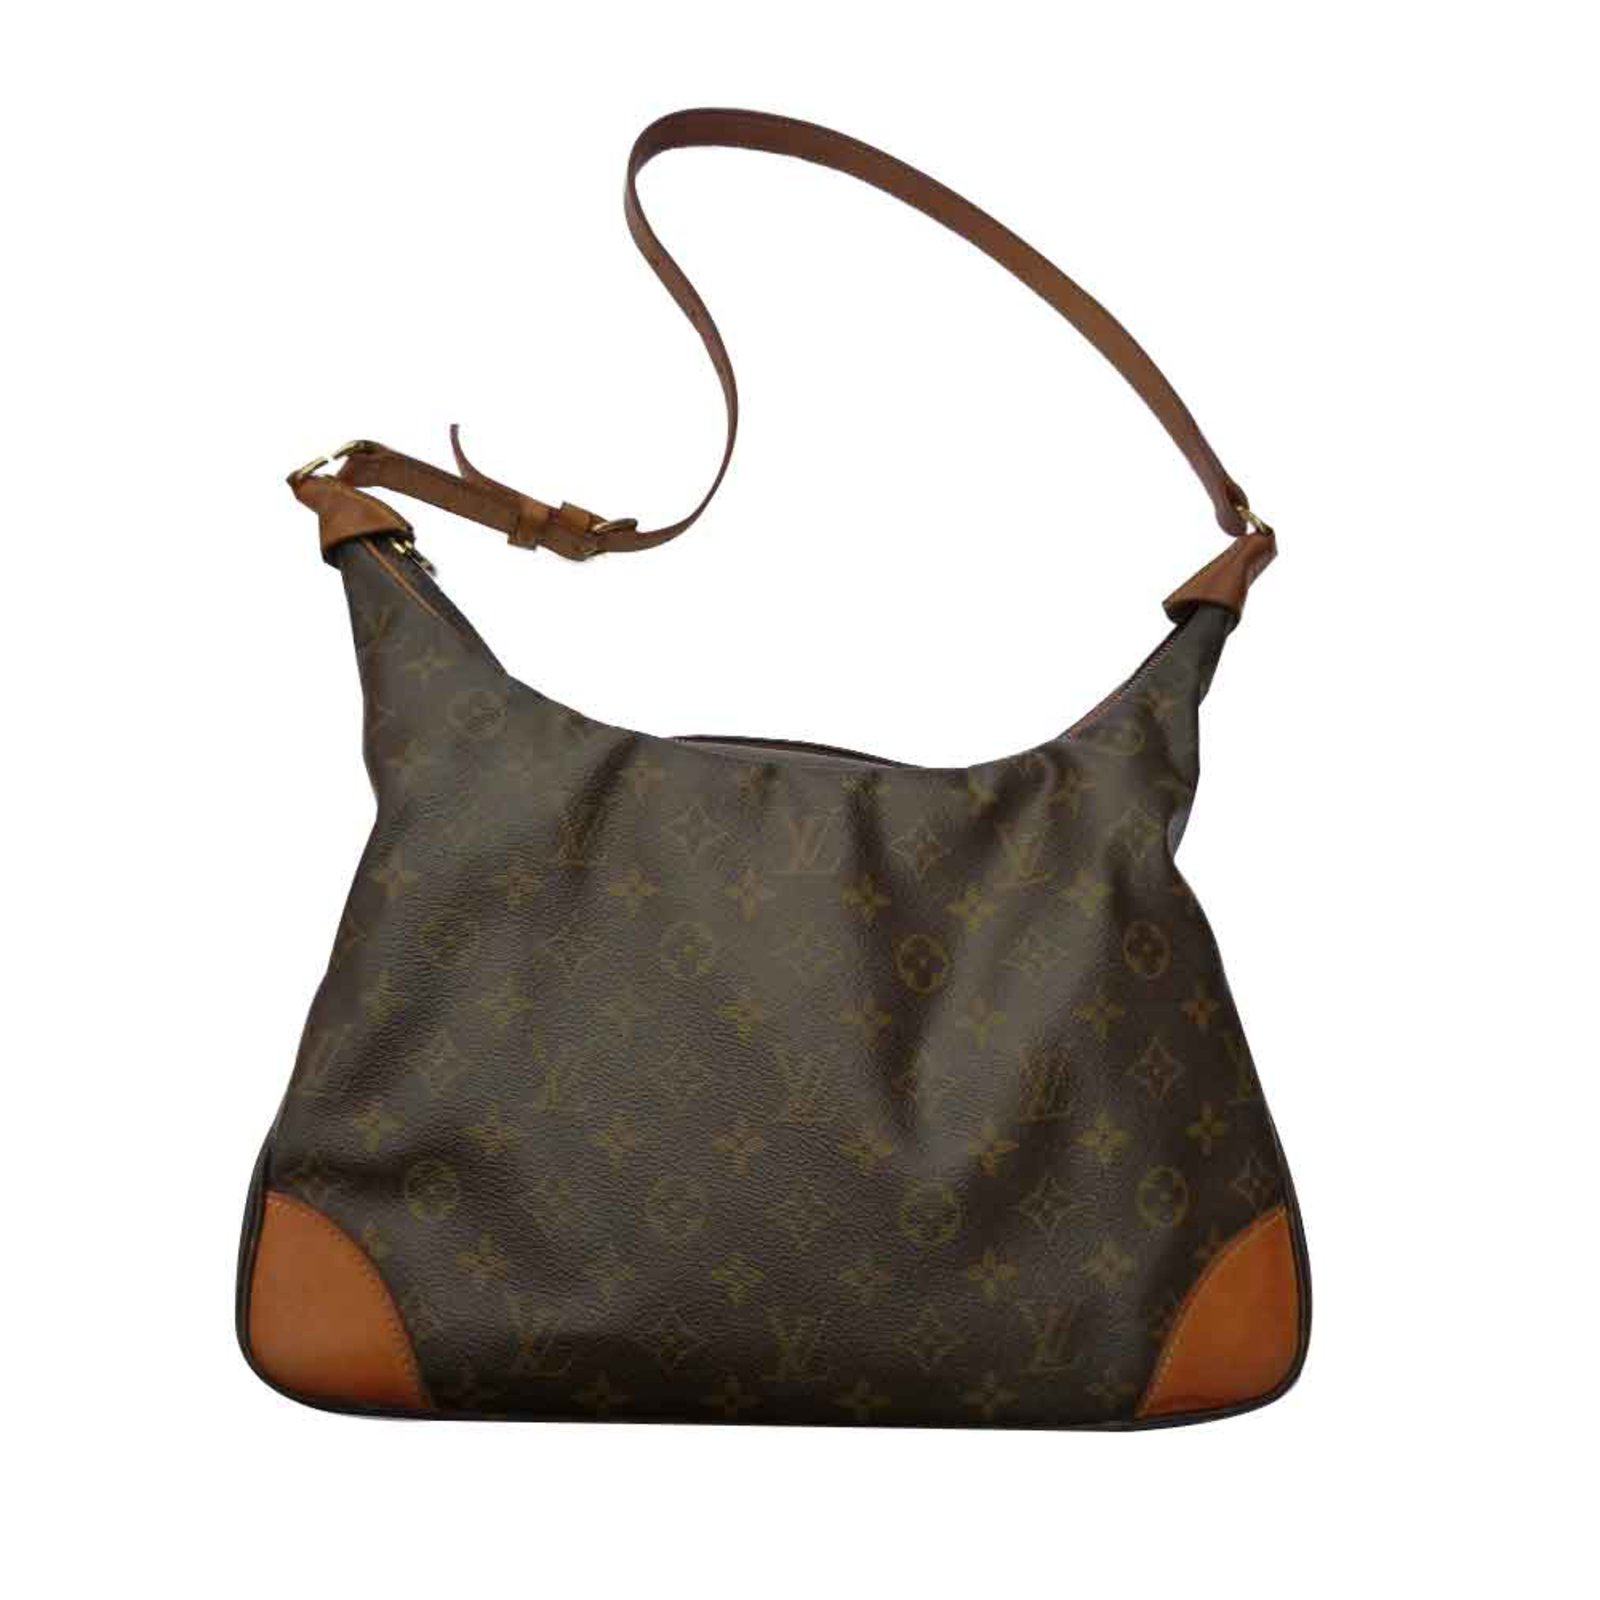 Louis Vuitton boulogne Handbags Leather 479bde5fe05ab